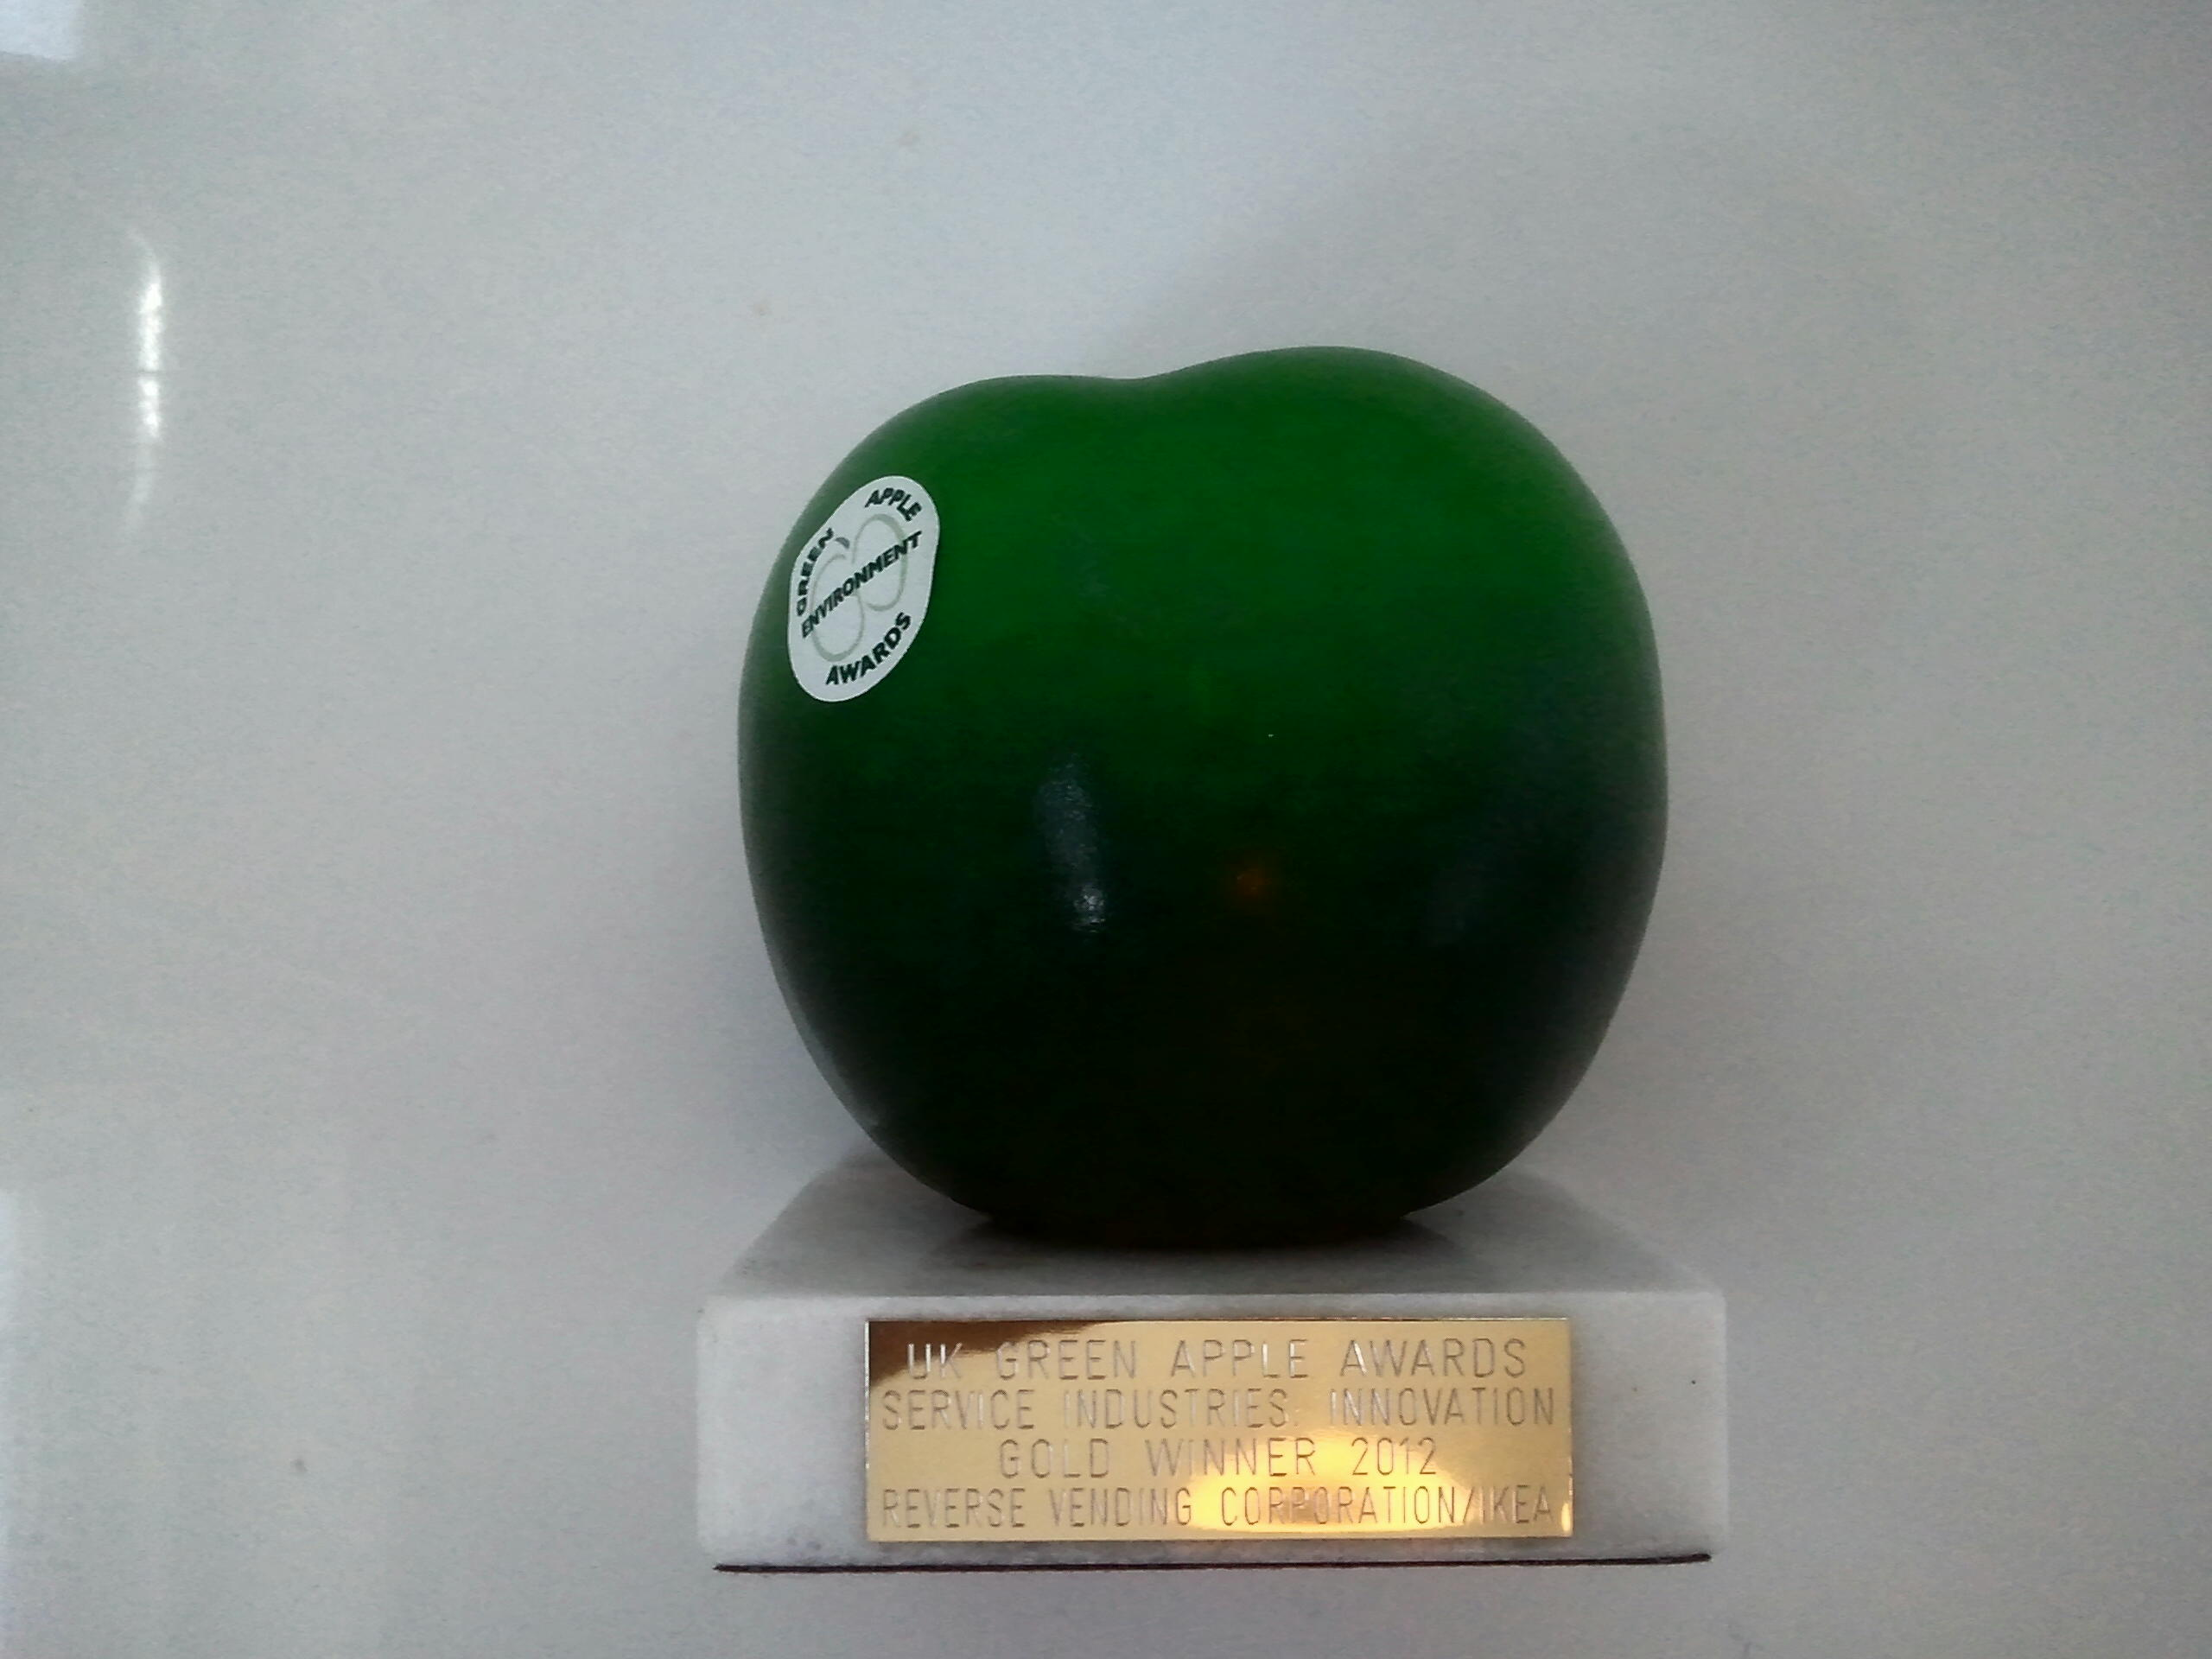 Green Apple Award 2012